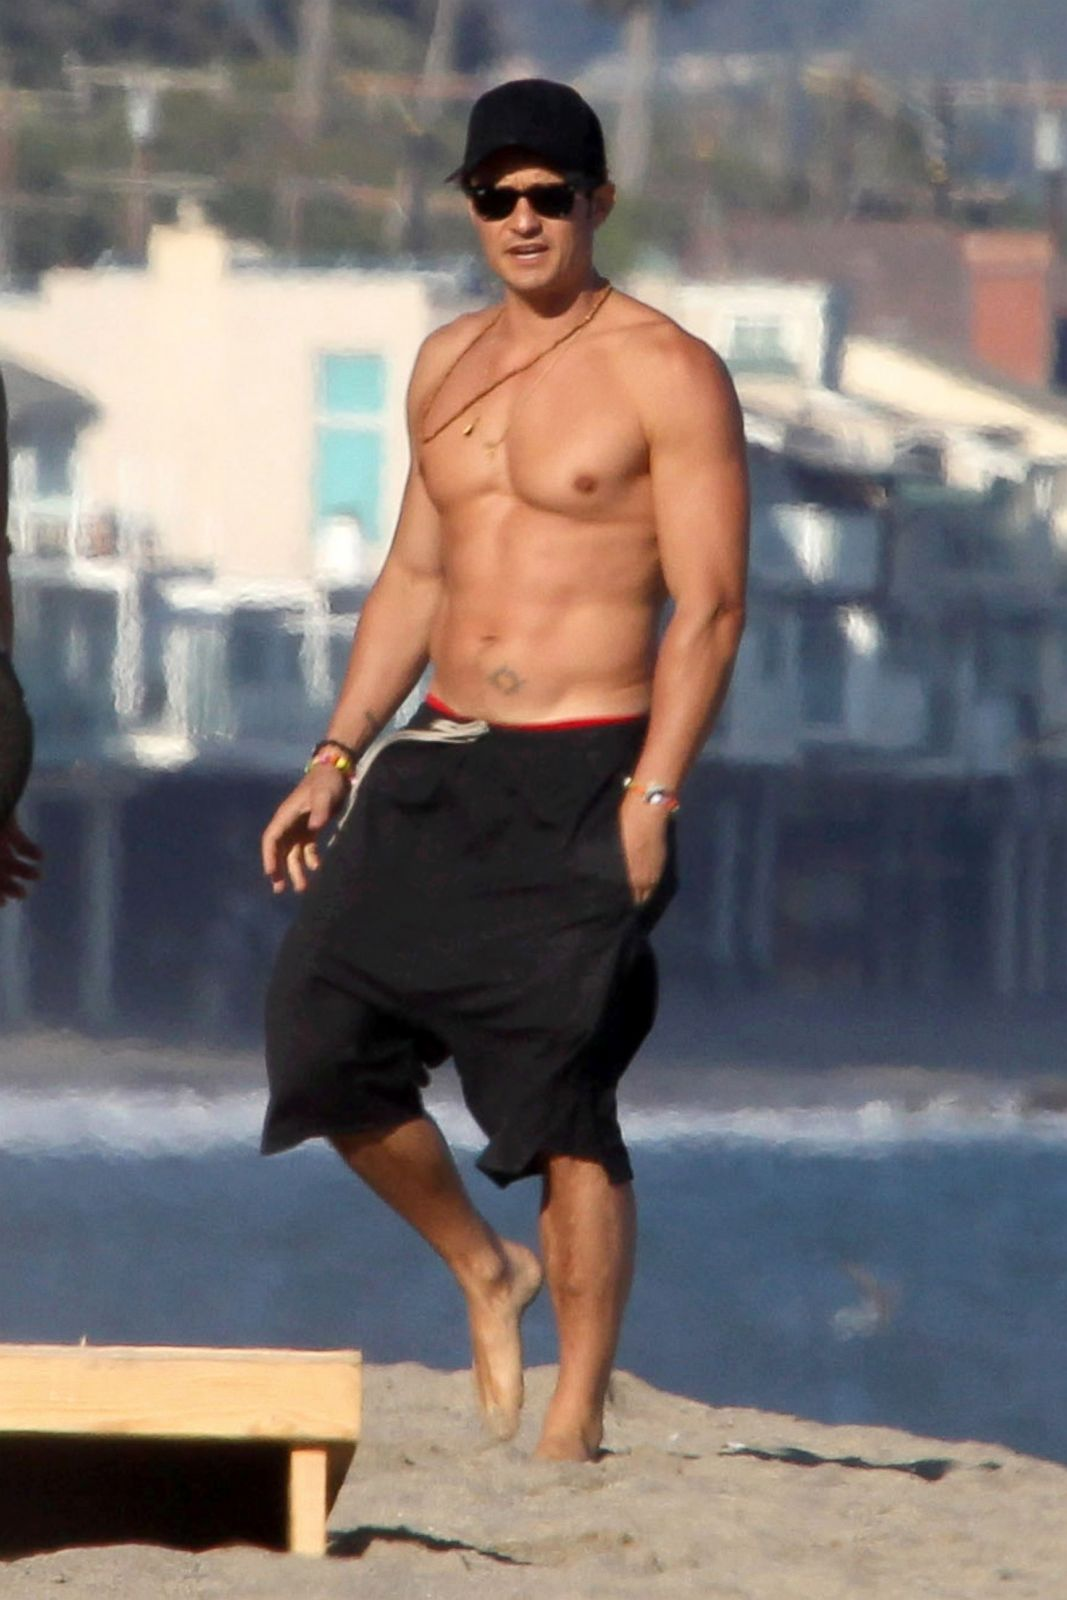 Orlando Bloom Hits the Beach Picture | Celebrities on Vacation - ABC ...